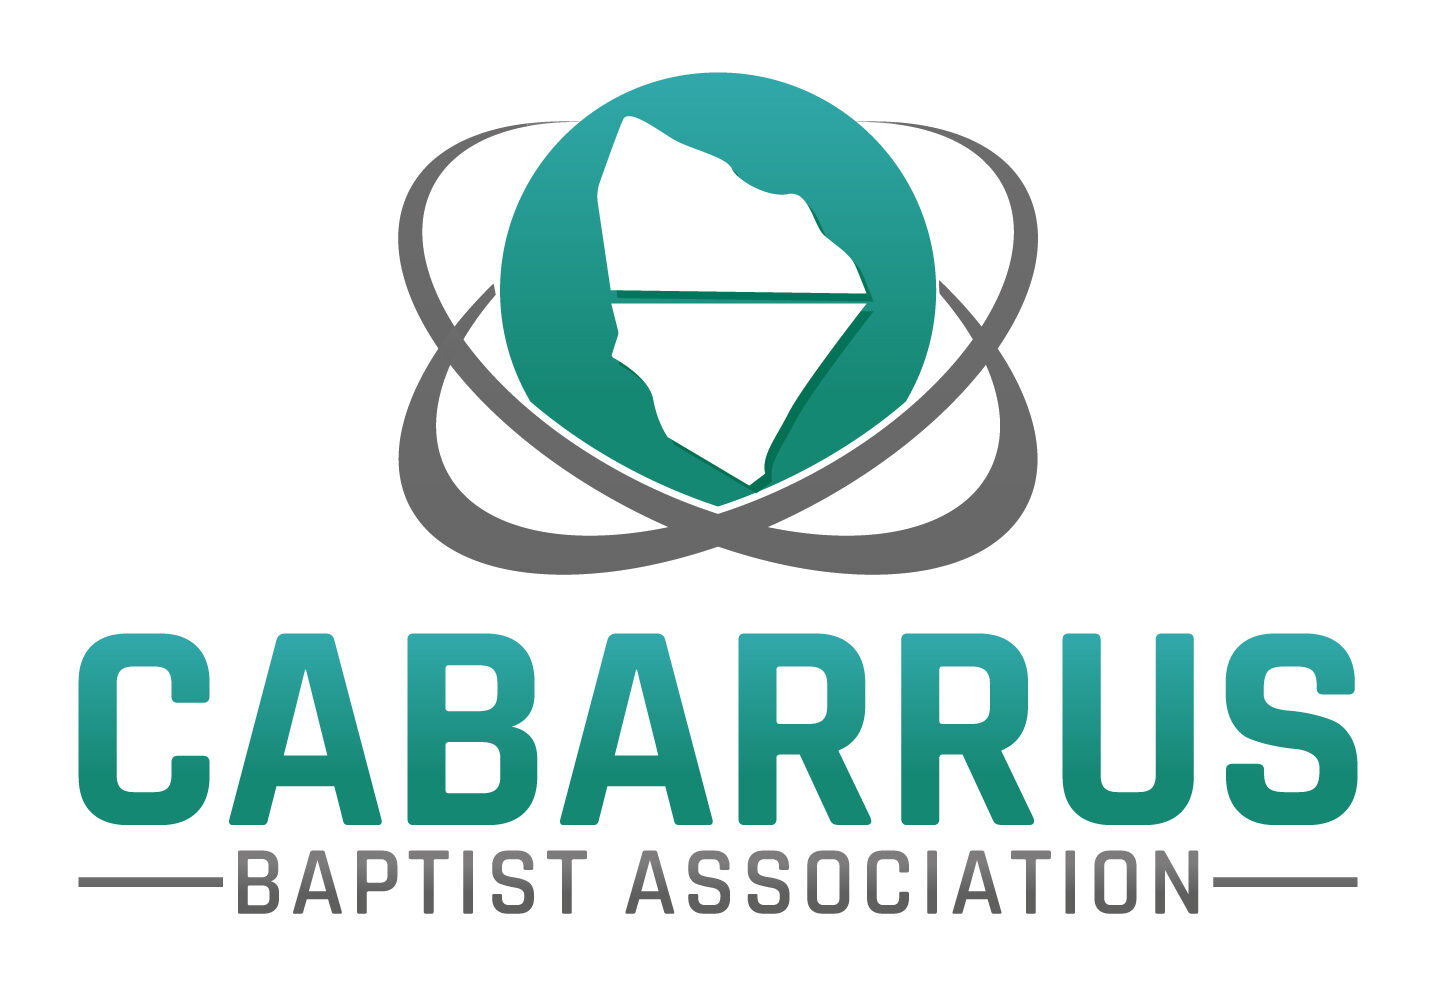 Cabarrus Baptist Association